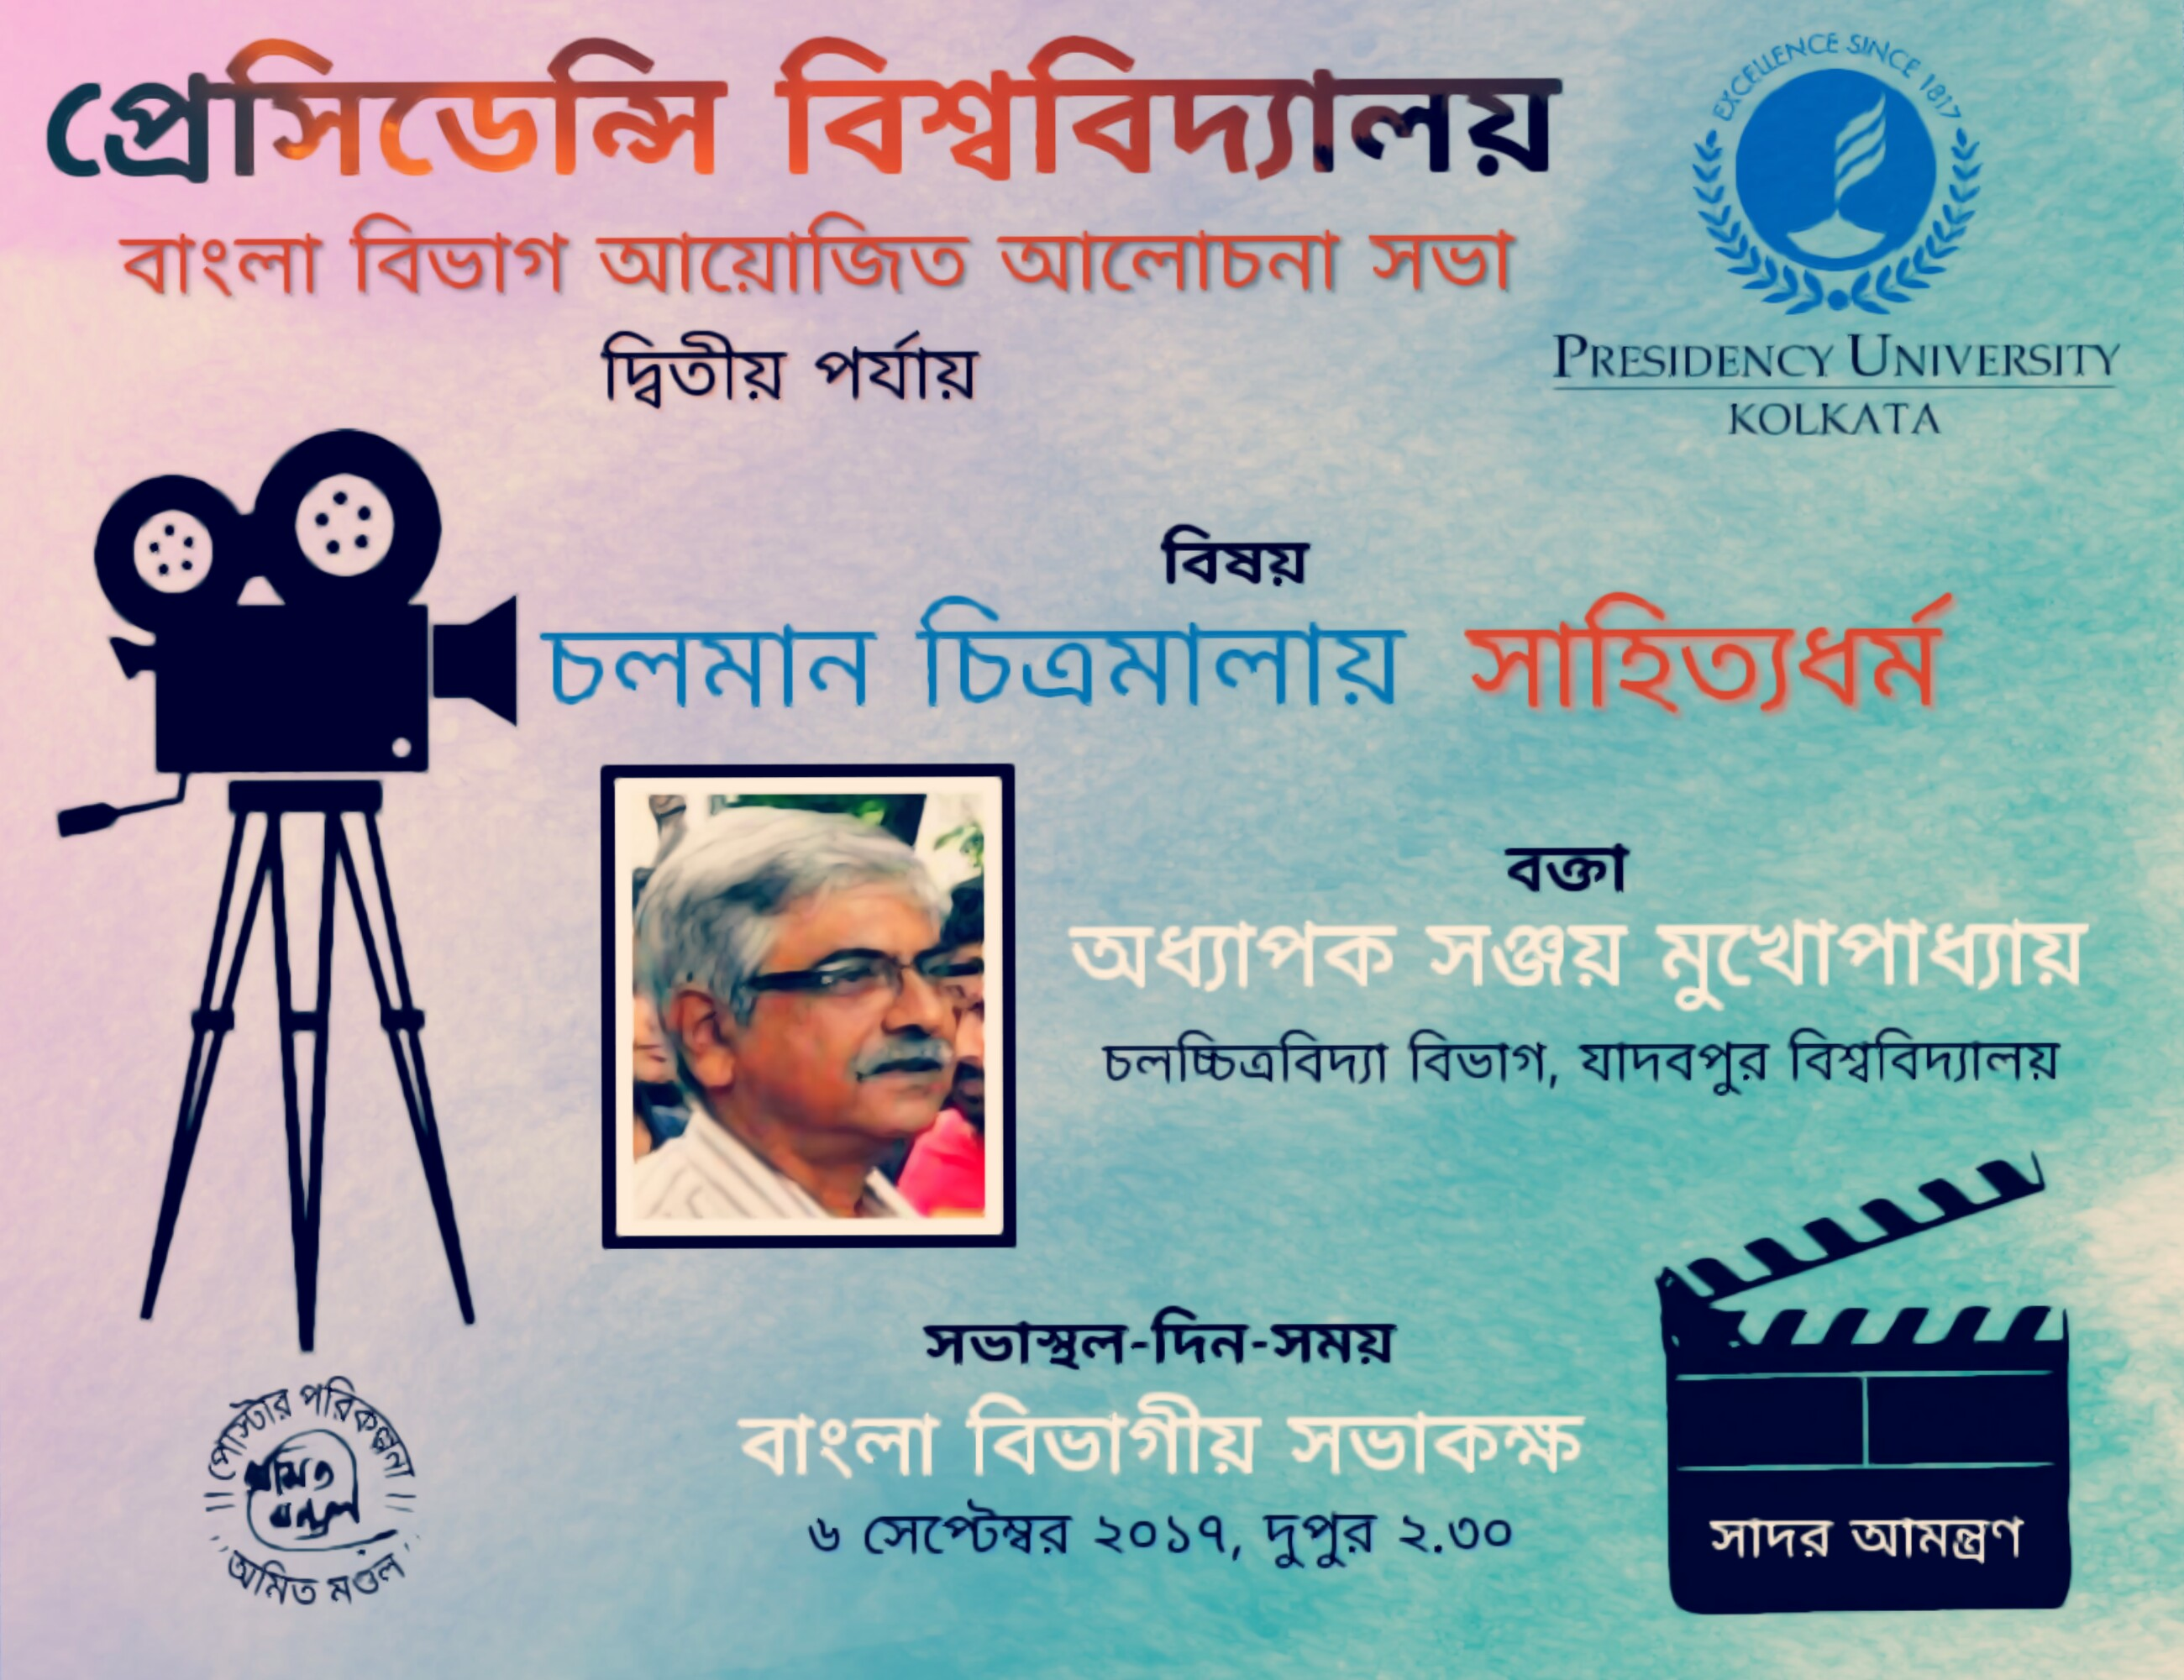 E Resourcespresidency Developing Better Research Environment At Wiring Meaning In Bengali 0230 Pm The Department Of Speaker Dr Sanjay Mukhopadhyay Professor Film Studies Jadavpur University Subject